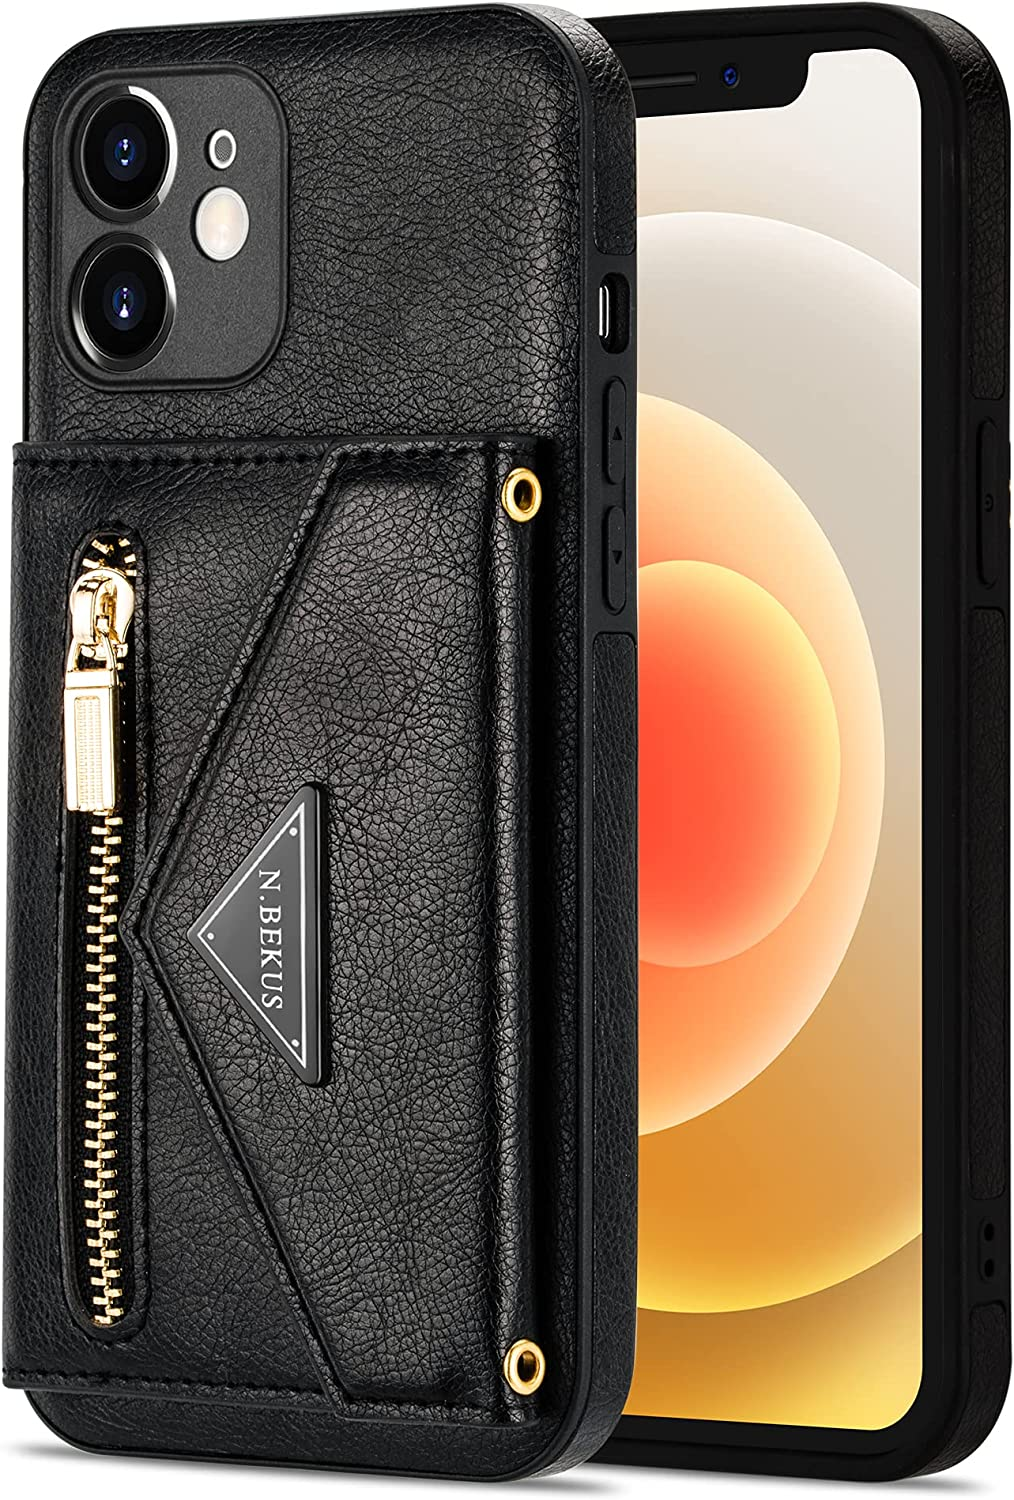 Crossbody Wallet Case for Samsung Galaxy Note 20 Ultra with Card Holder, Zipper Back Flip Card Slot Protector Shockproof Purse PU Leather Cover with Removable Cross Body Strap (Black)